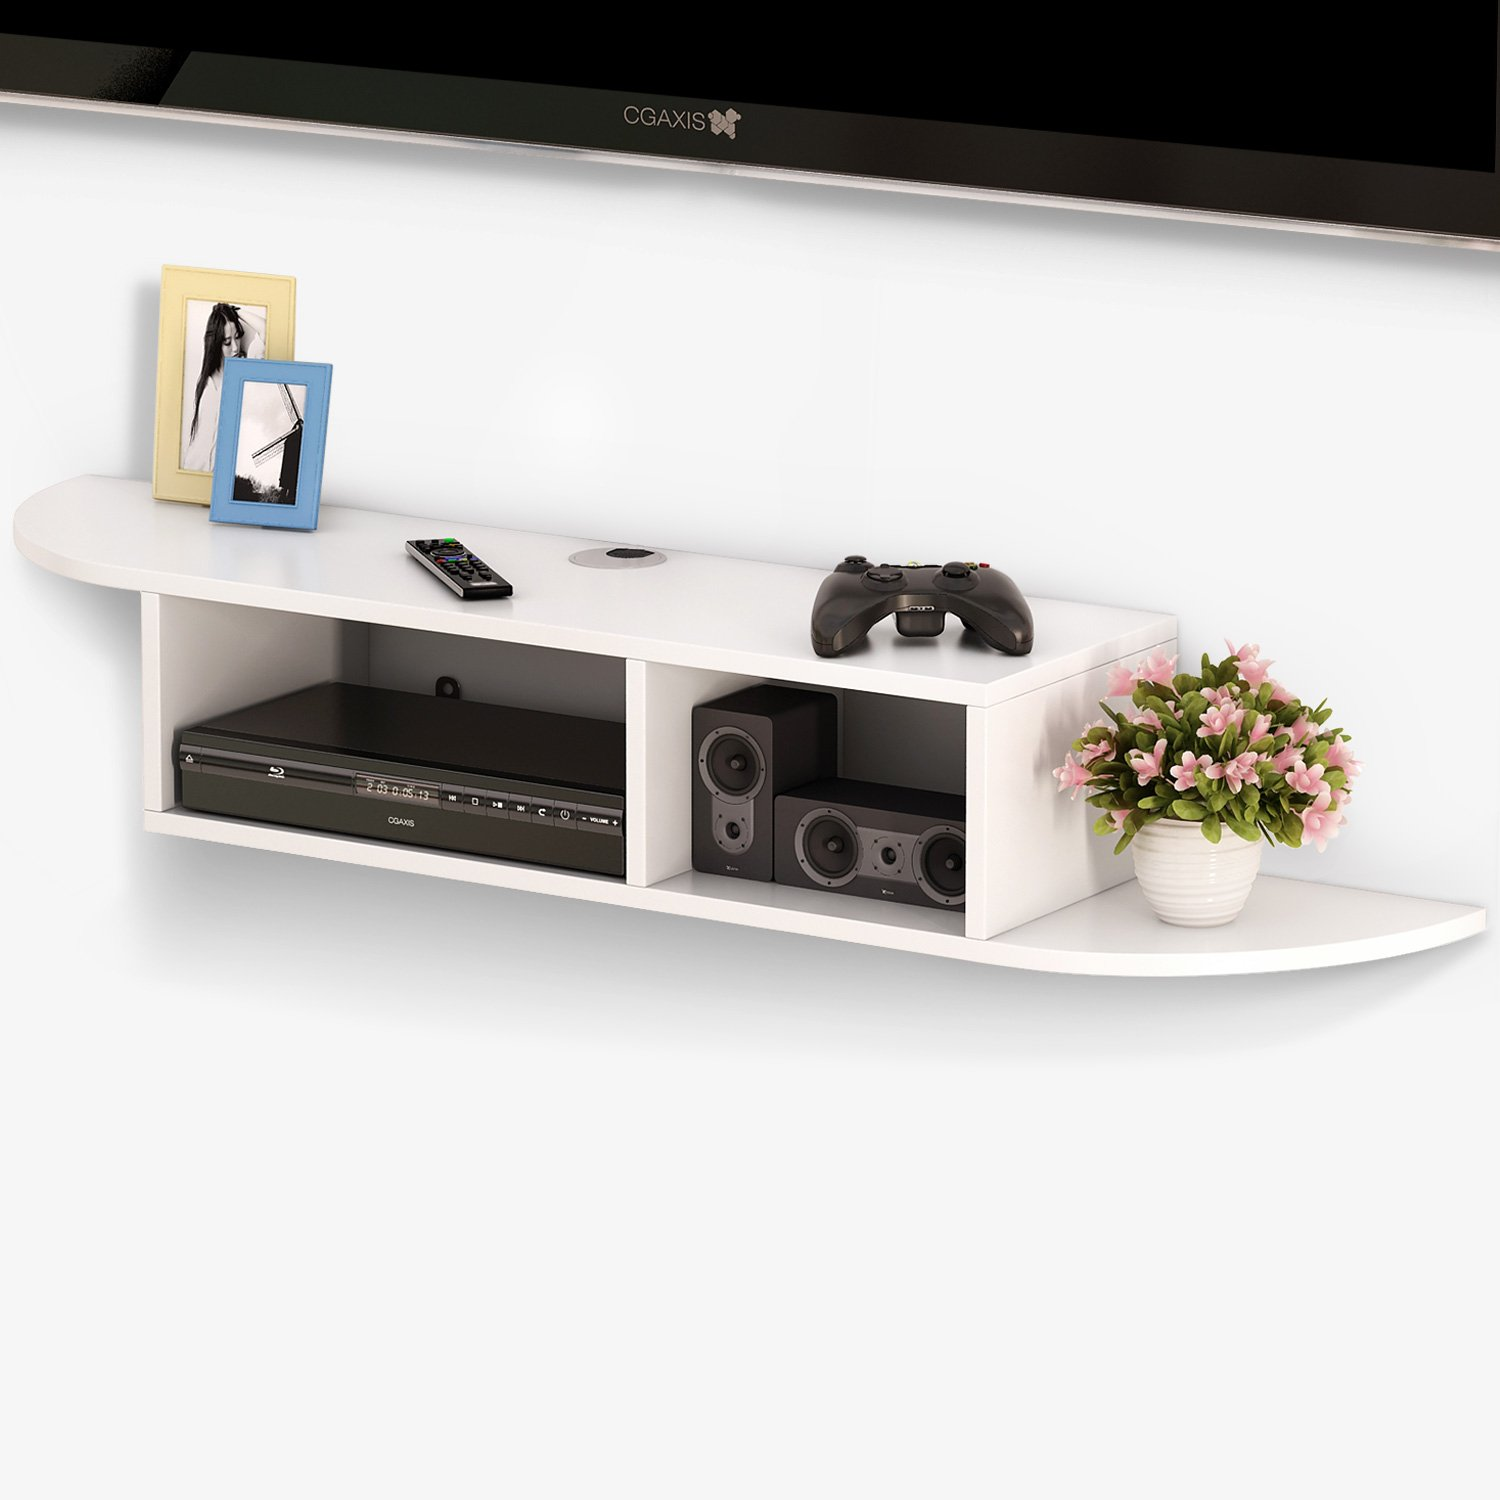 Floating console shelf White Oak Amazoncom Tribesigns Tier Modern Wall Mount Floating Shelf Tv Console 433x94x7 Inch For Cable Boxesroutersremotesdvd Playersgame Consoles white Amazoncom Amazoncom Tribesigns Tier Modern Wall Mount Floating Shelf Tv